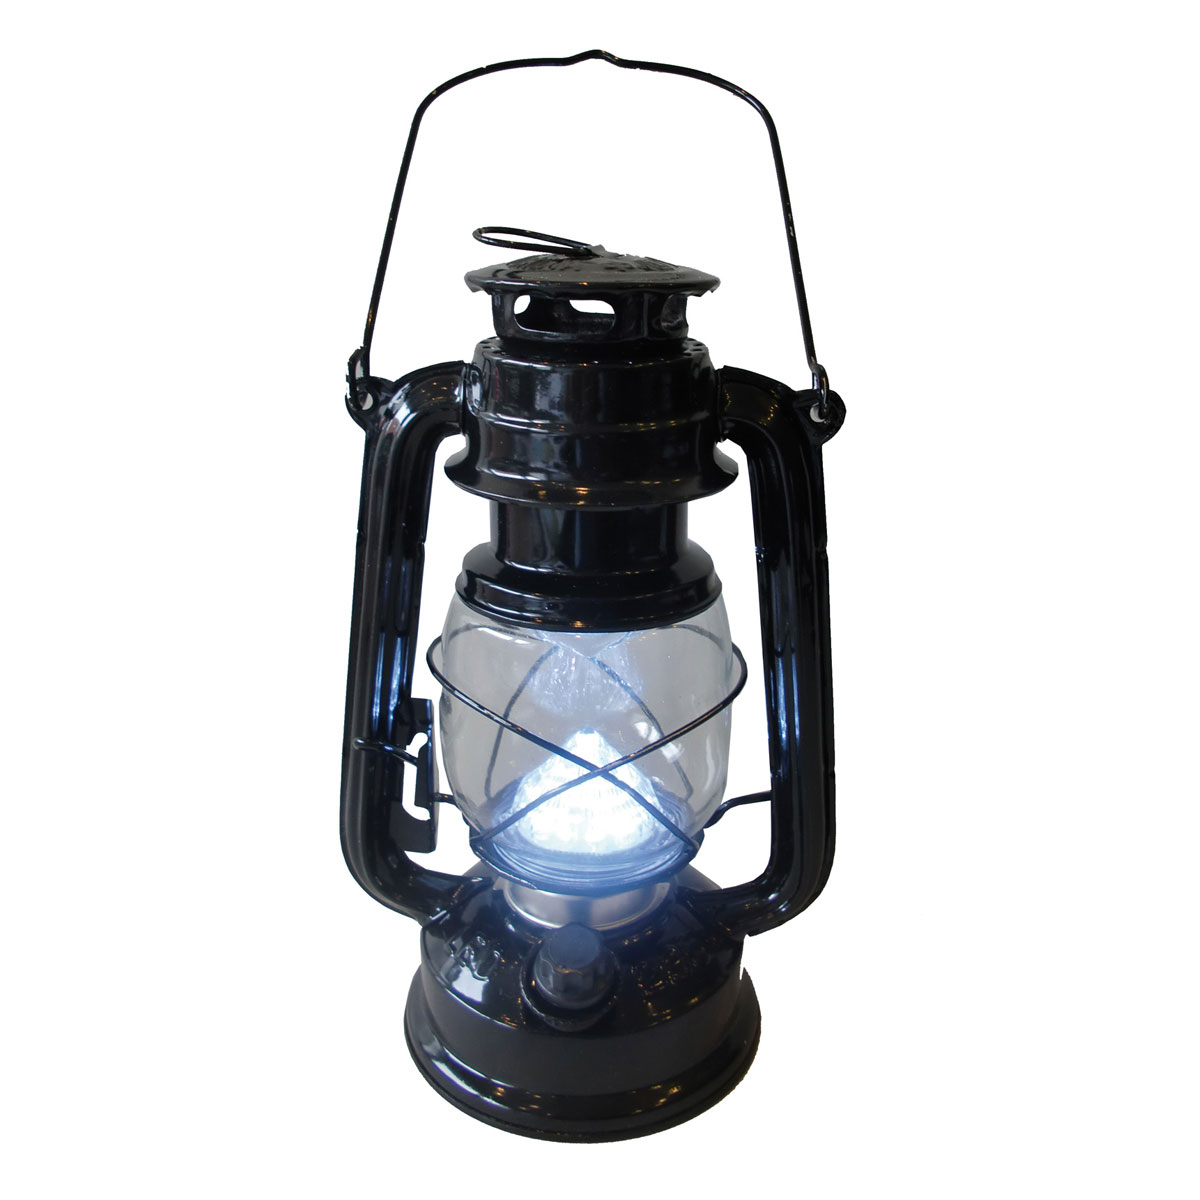 yellowstone campinglampe led laterne zeltlampe licht outdoor leuchte ventilator ebay. Black Bedroom Furniture Sets. Home Design Ideas